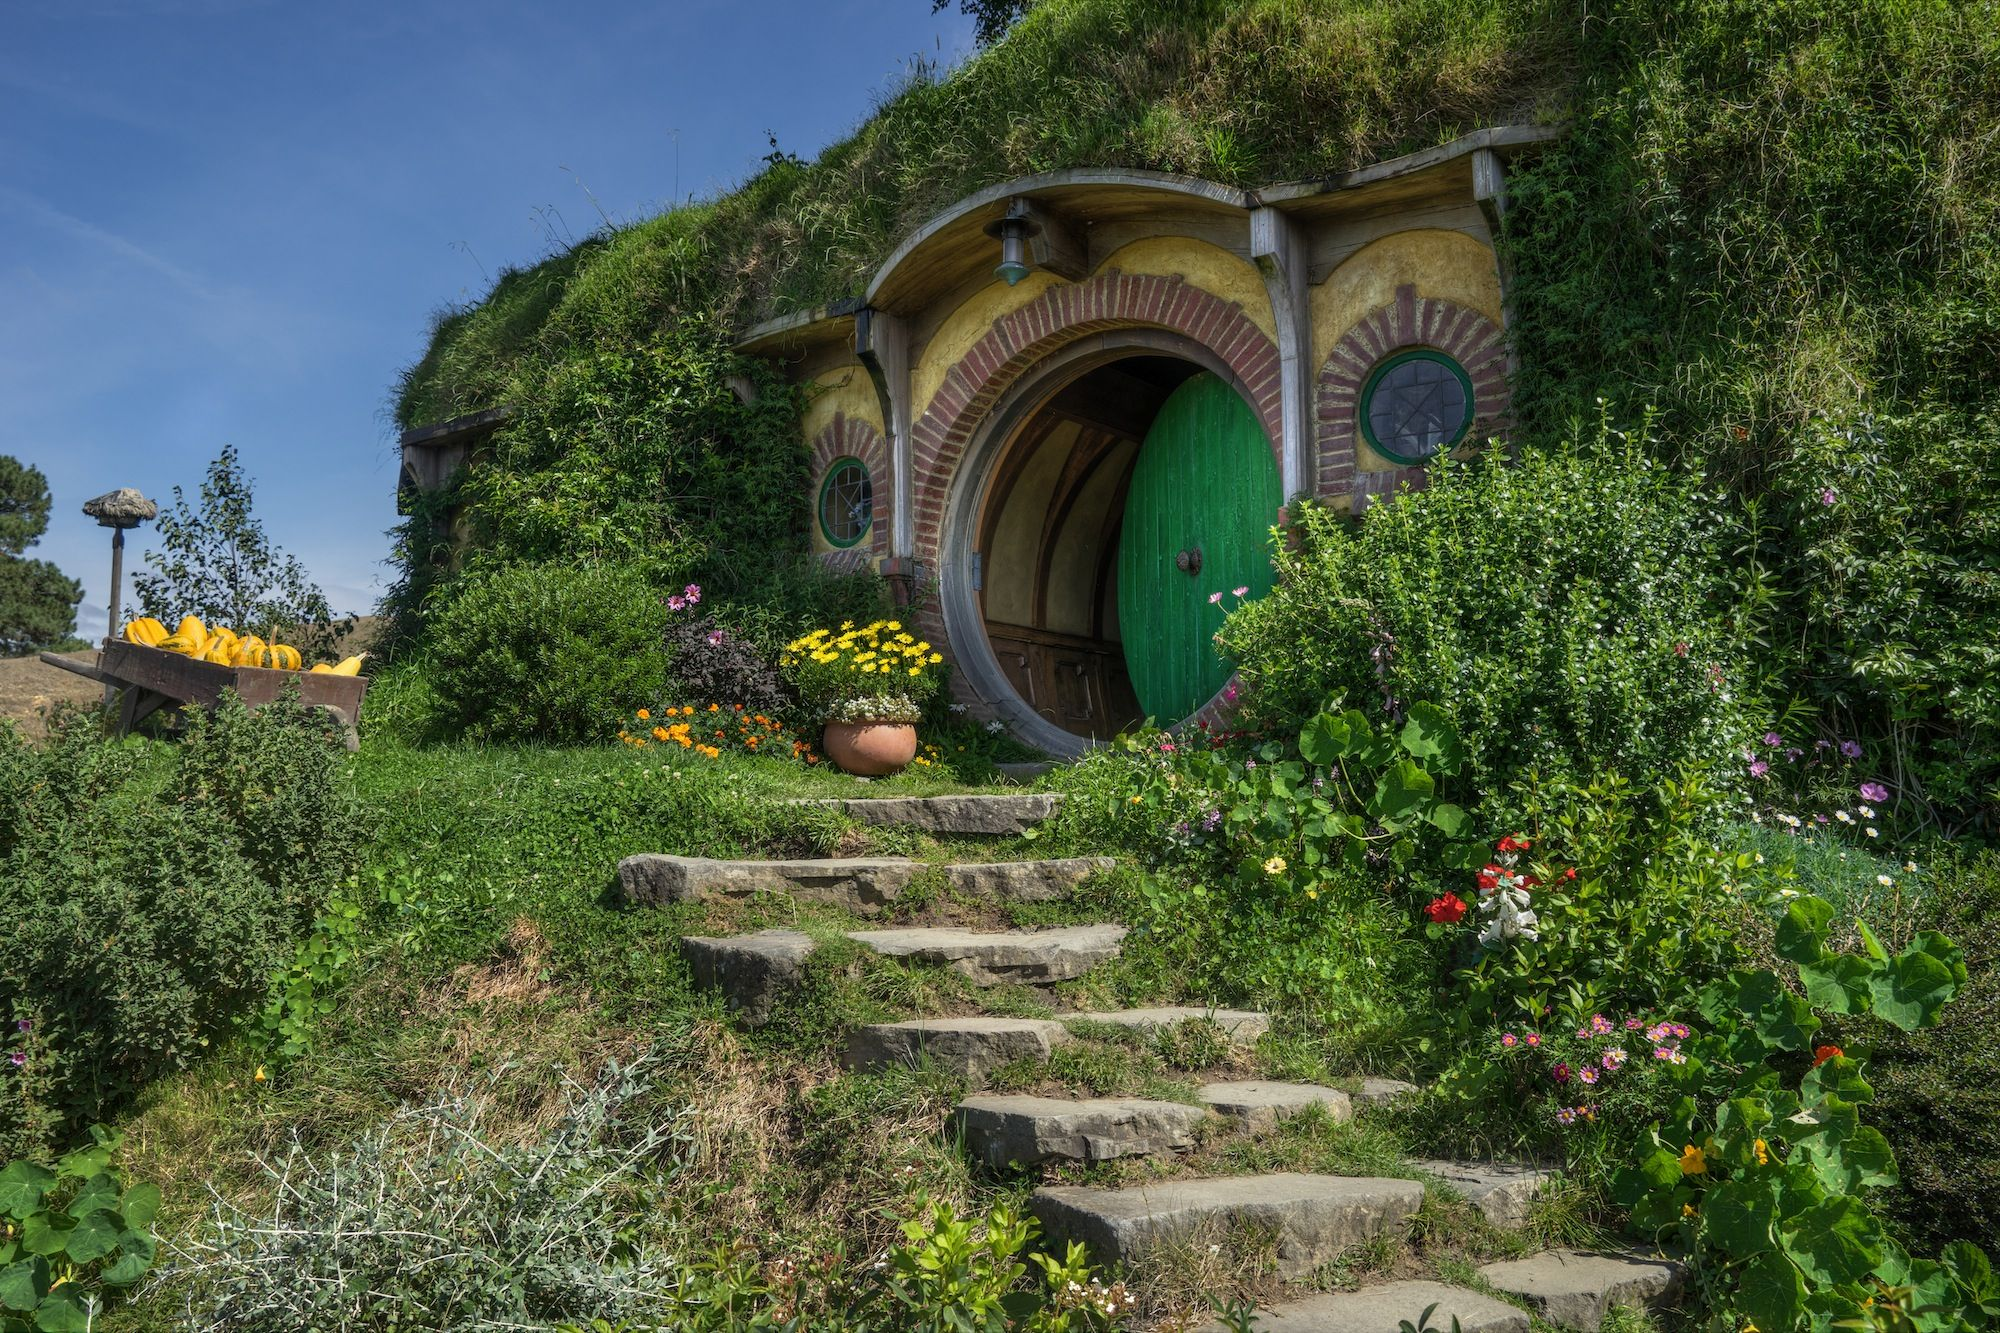 Hobbit Hole House exploring hobbiton and the shire home of frodo baggins hobbit hole